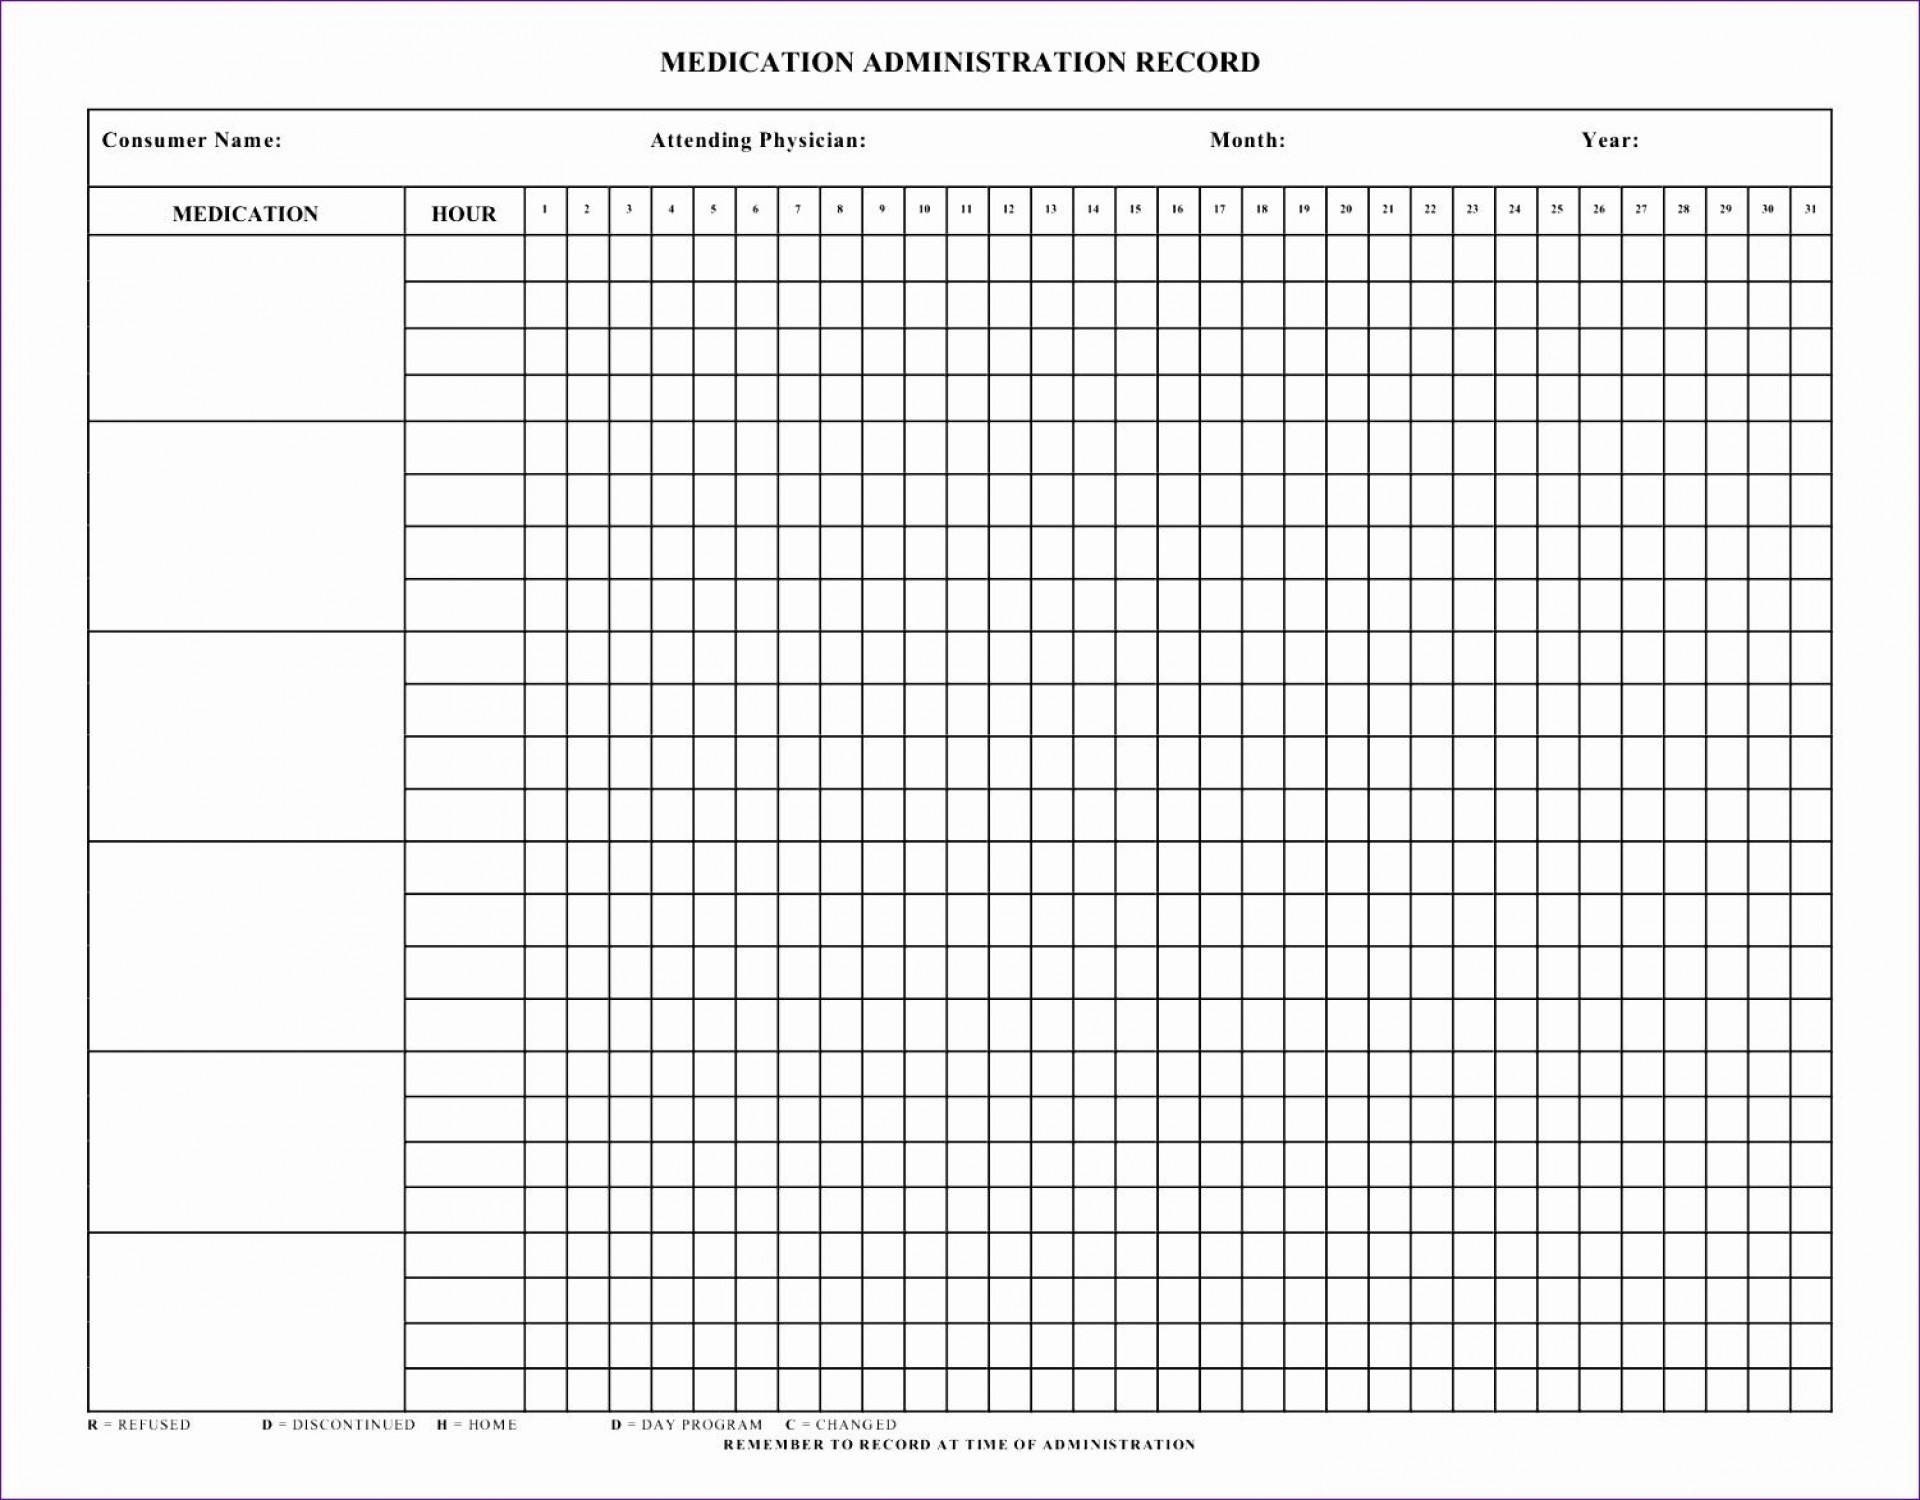 009 Marvelou Medication Administration Record Template Inspiration  Templates Medicine Sheet1920